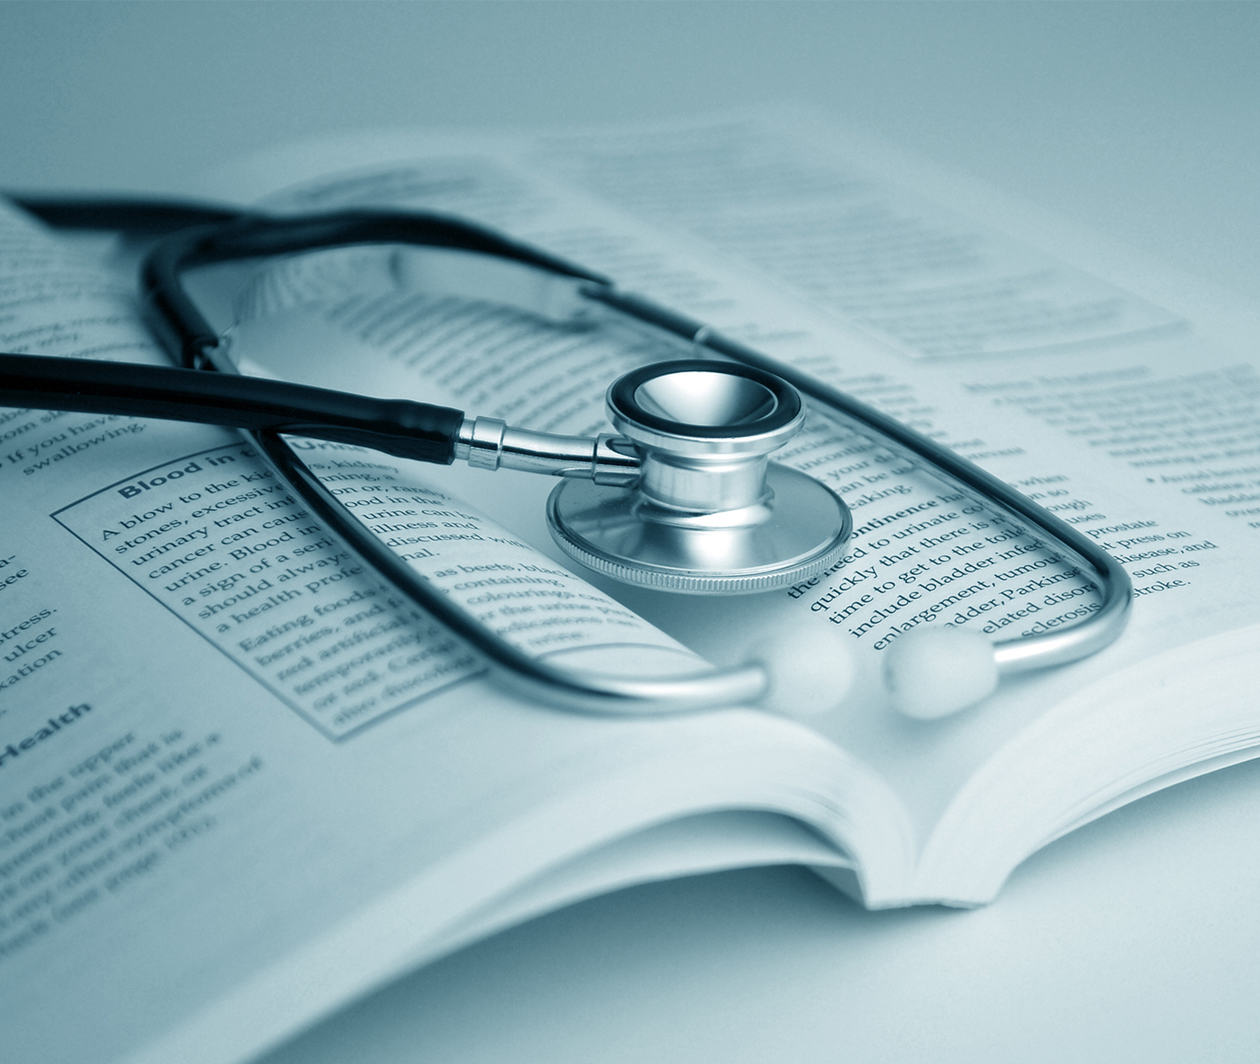 Healthcare Research: For Healthcare Professionals